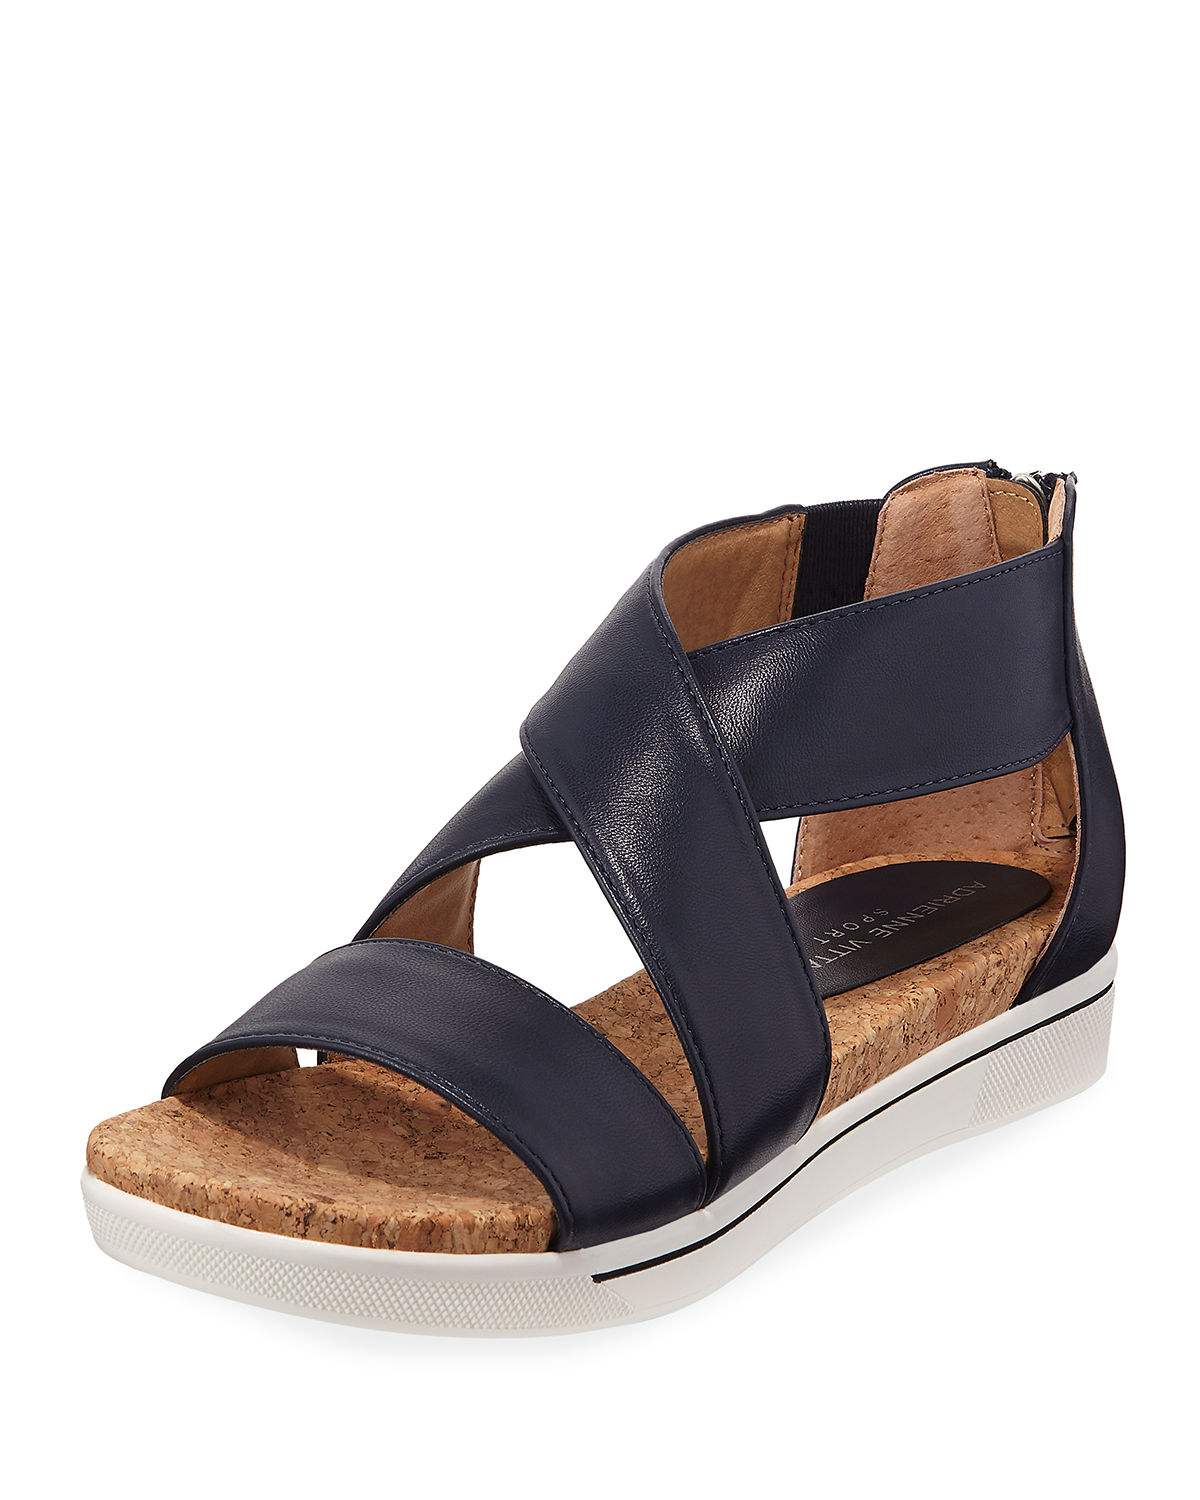 Adrienne Vittadini Claud Sport Leather Crisscross Sandals, NAVY